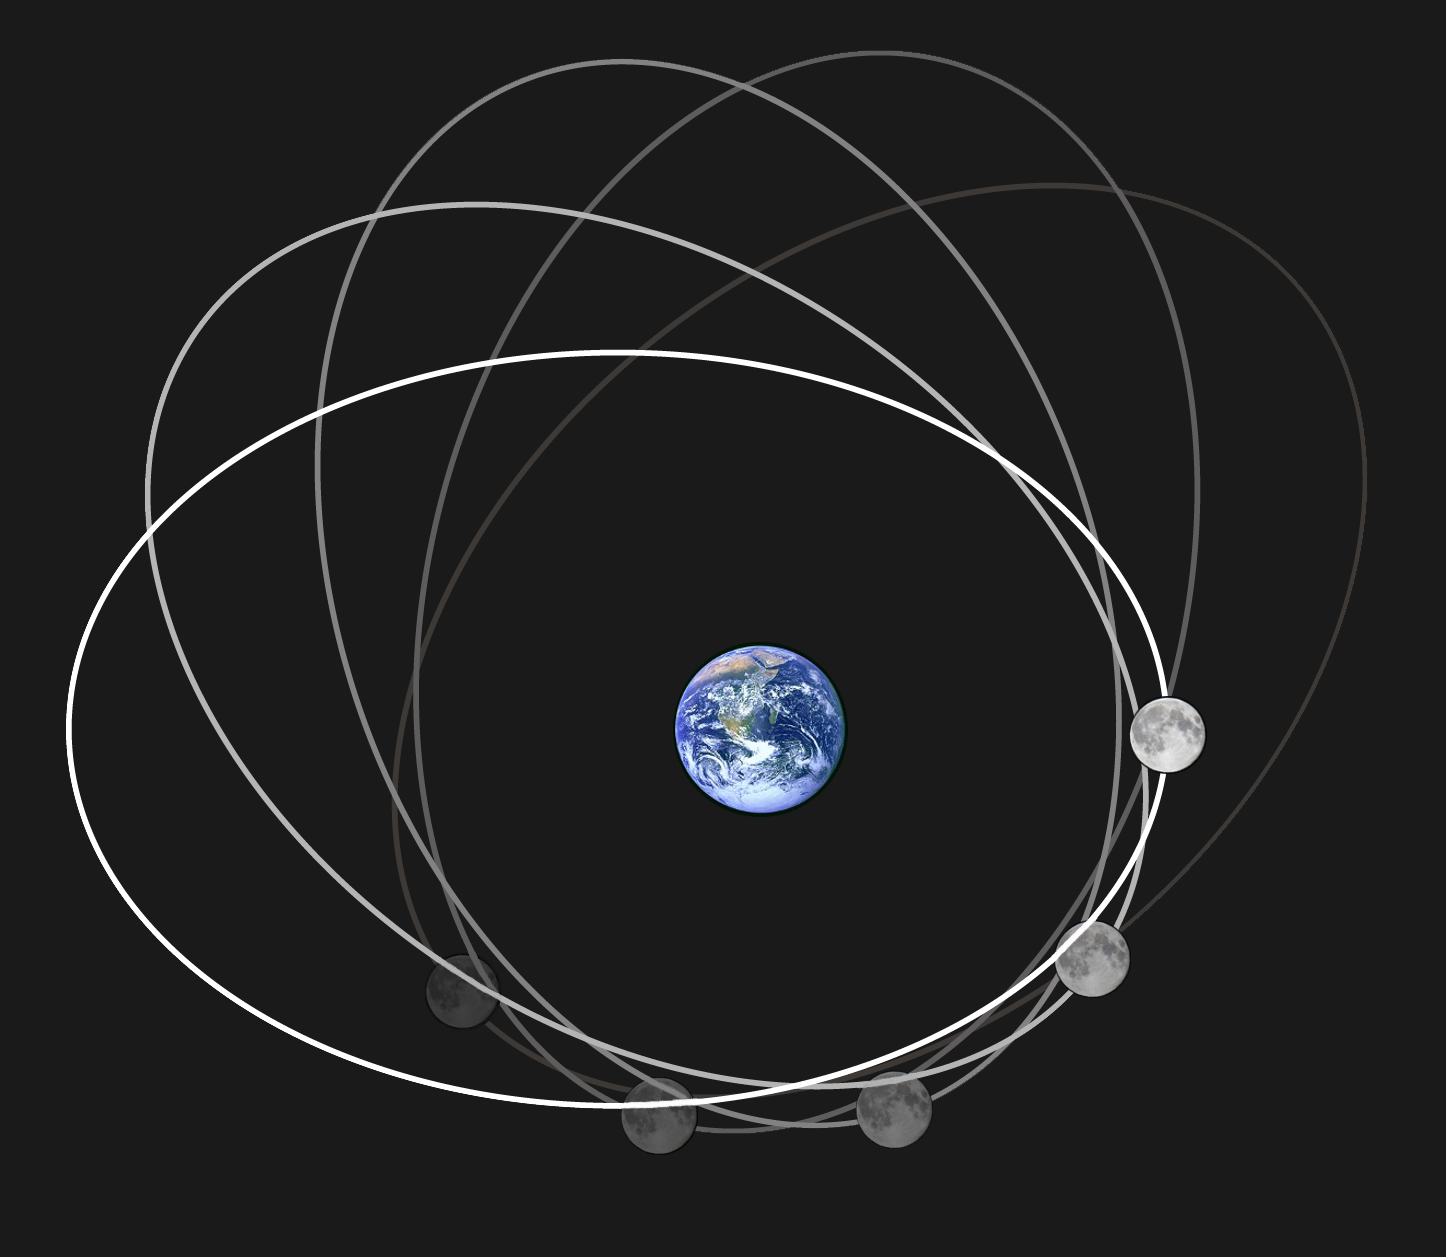 The Moon's orbit is not a perfect circle. (Rfassbind/WikimediaCommons)